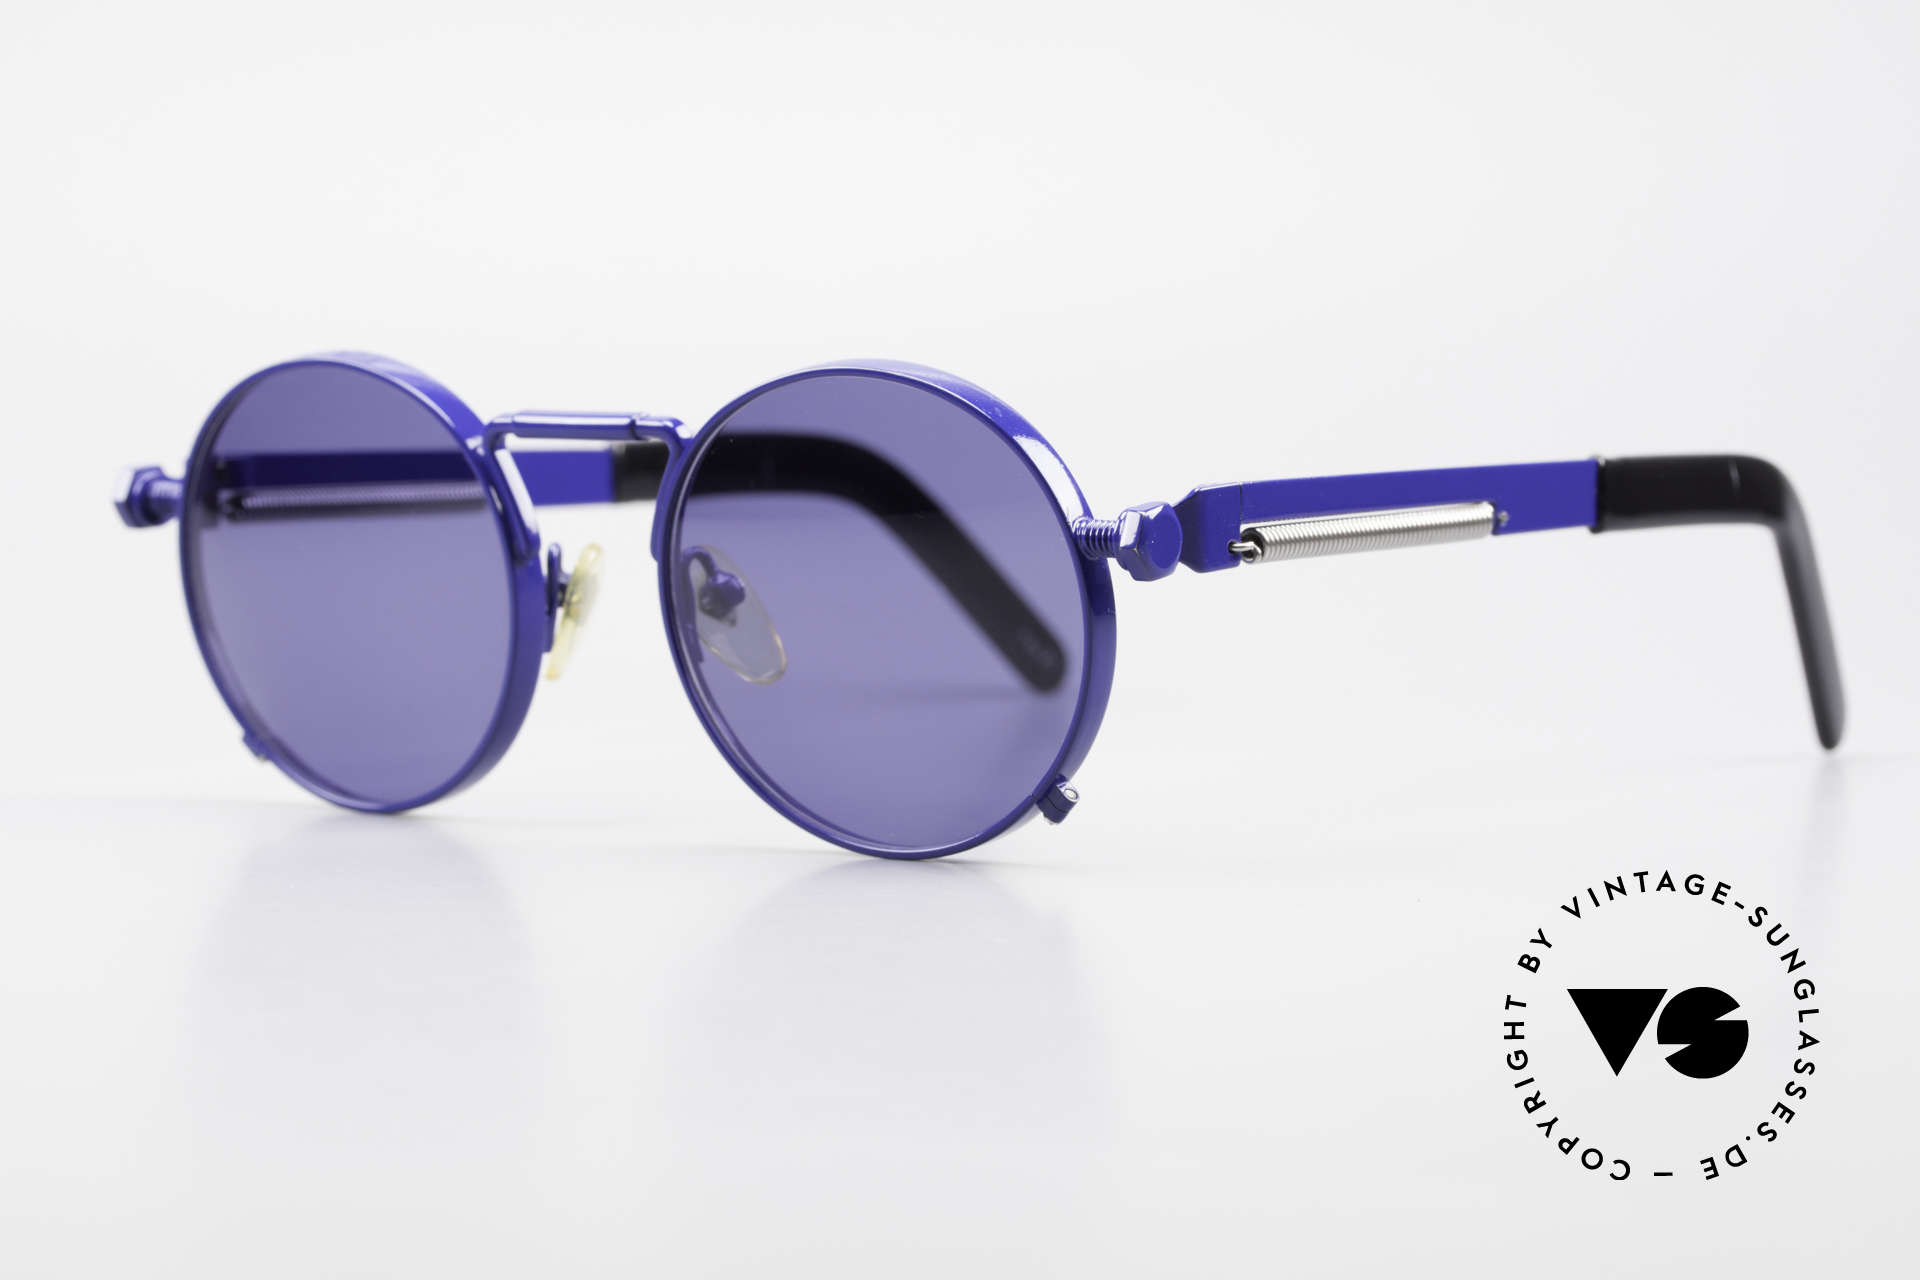 Jean Paul Gaultier 56-8171 Customized Blue Edition, incredible sturdy bridge and hinges (You must feel this!), Made for Men and Women